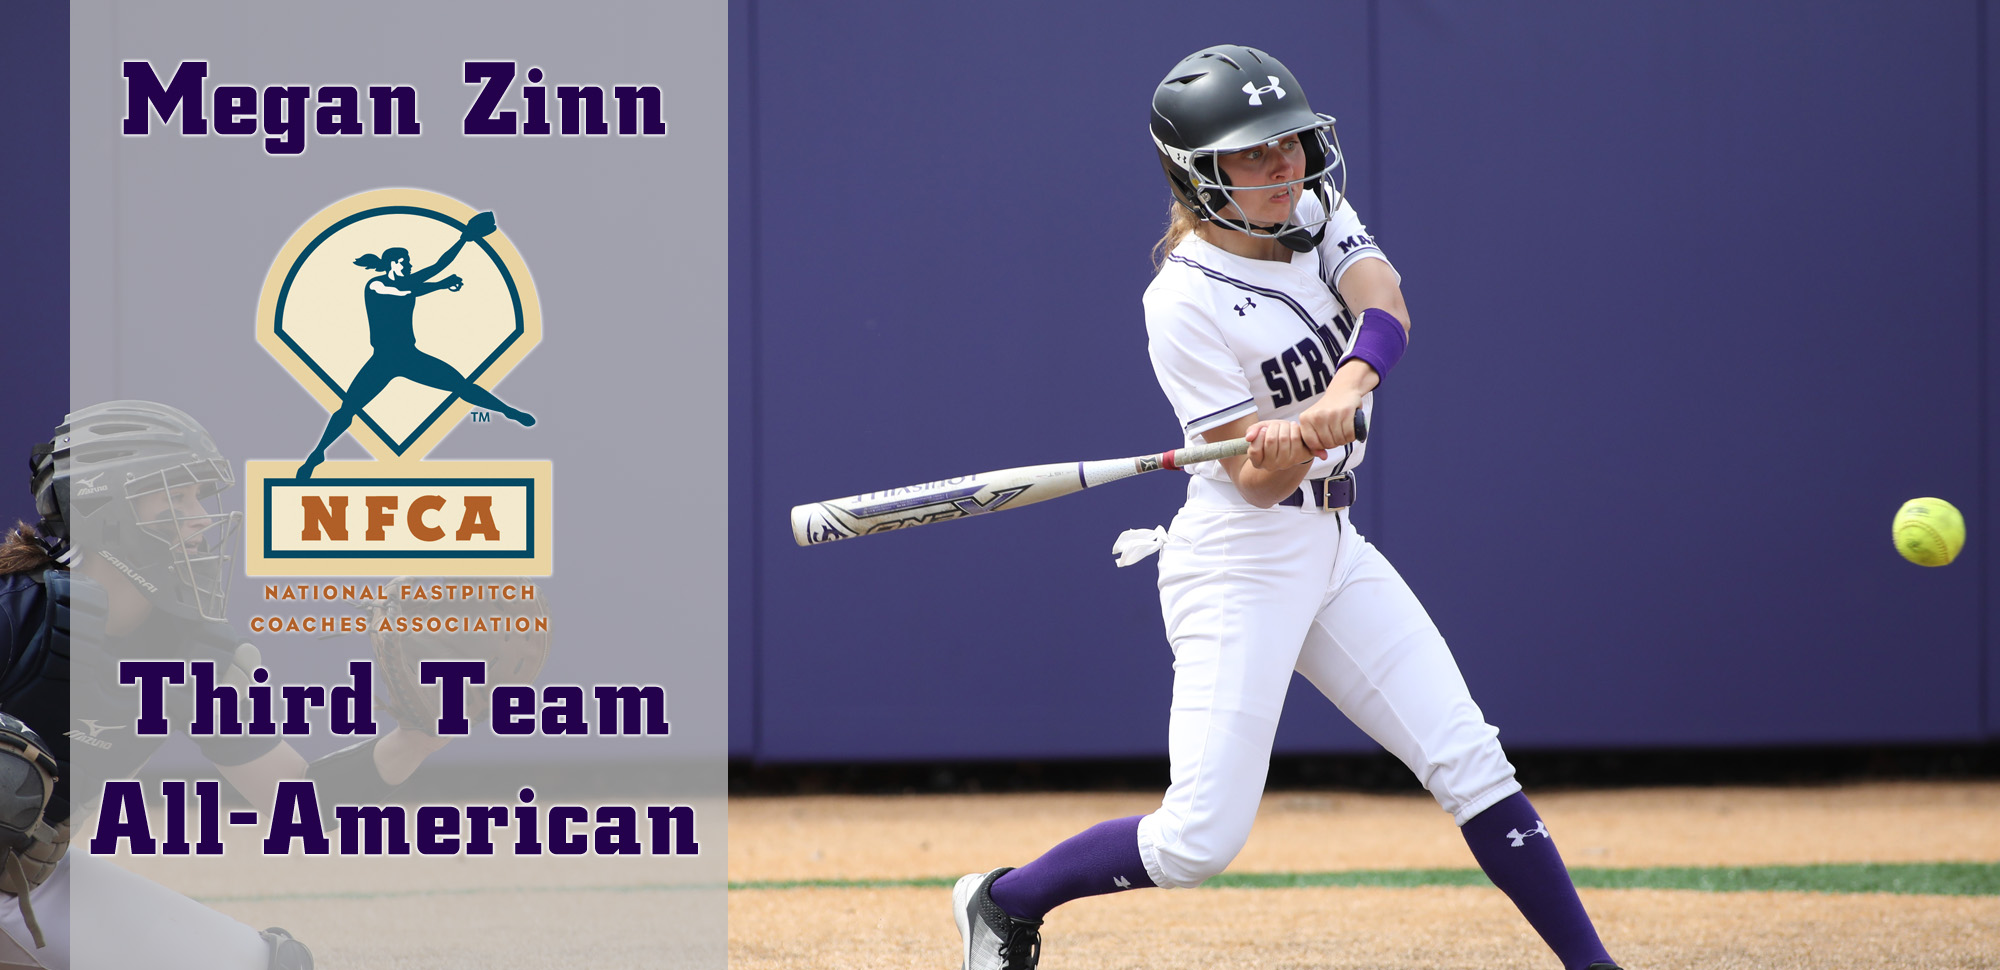 Junior Megan Zinn became just the second player in Scranton history to earn NFCA All-American honors. © Photo by Timothy R. Dougherty / doubleeaglephotography.com